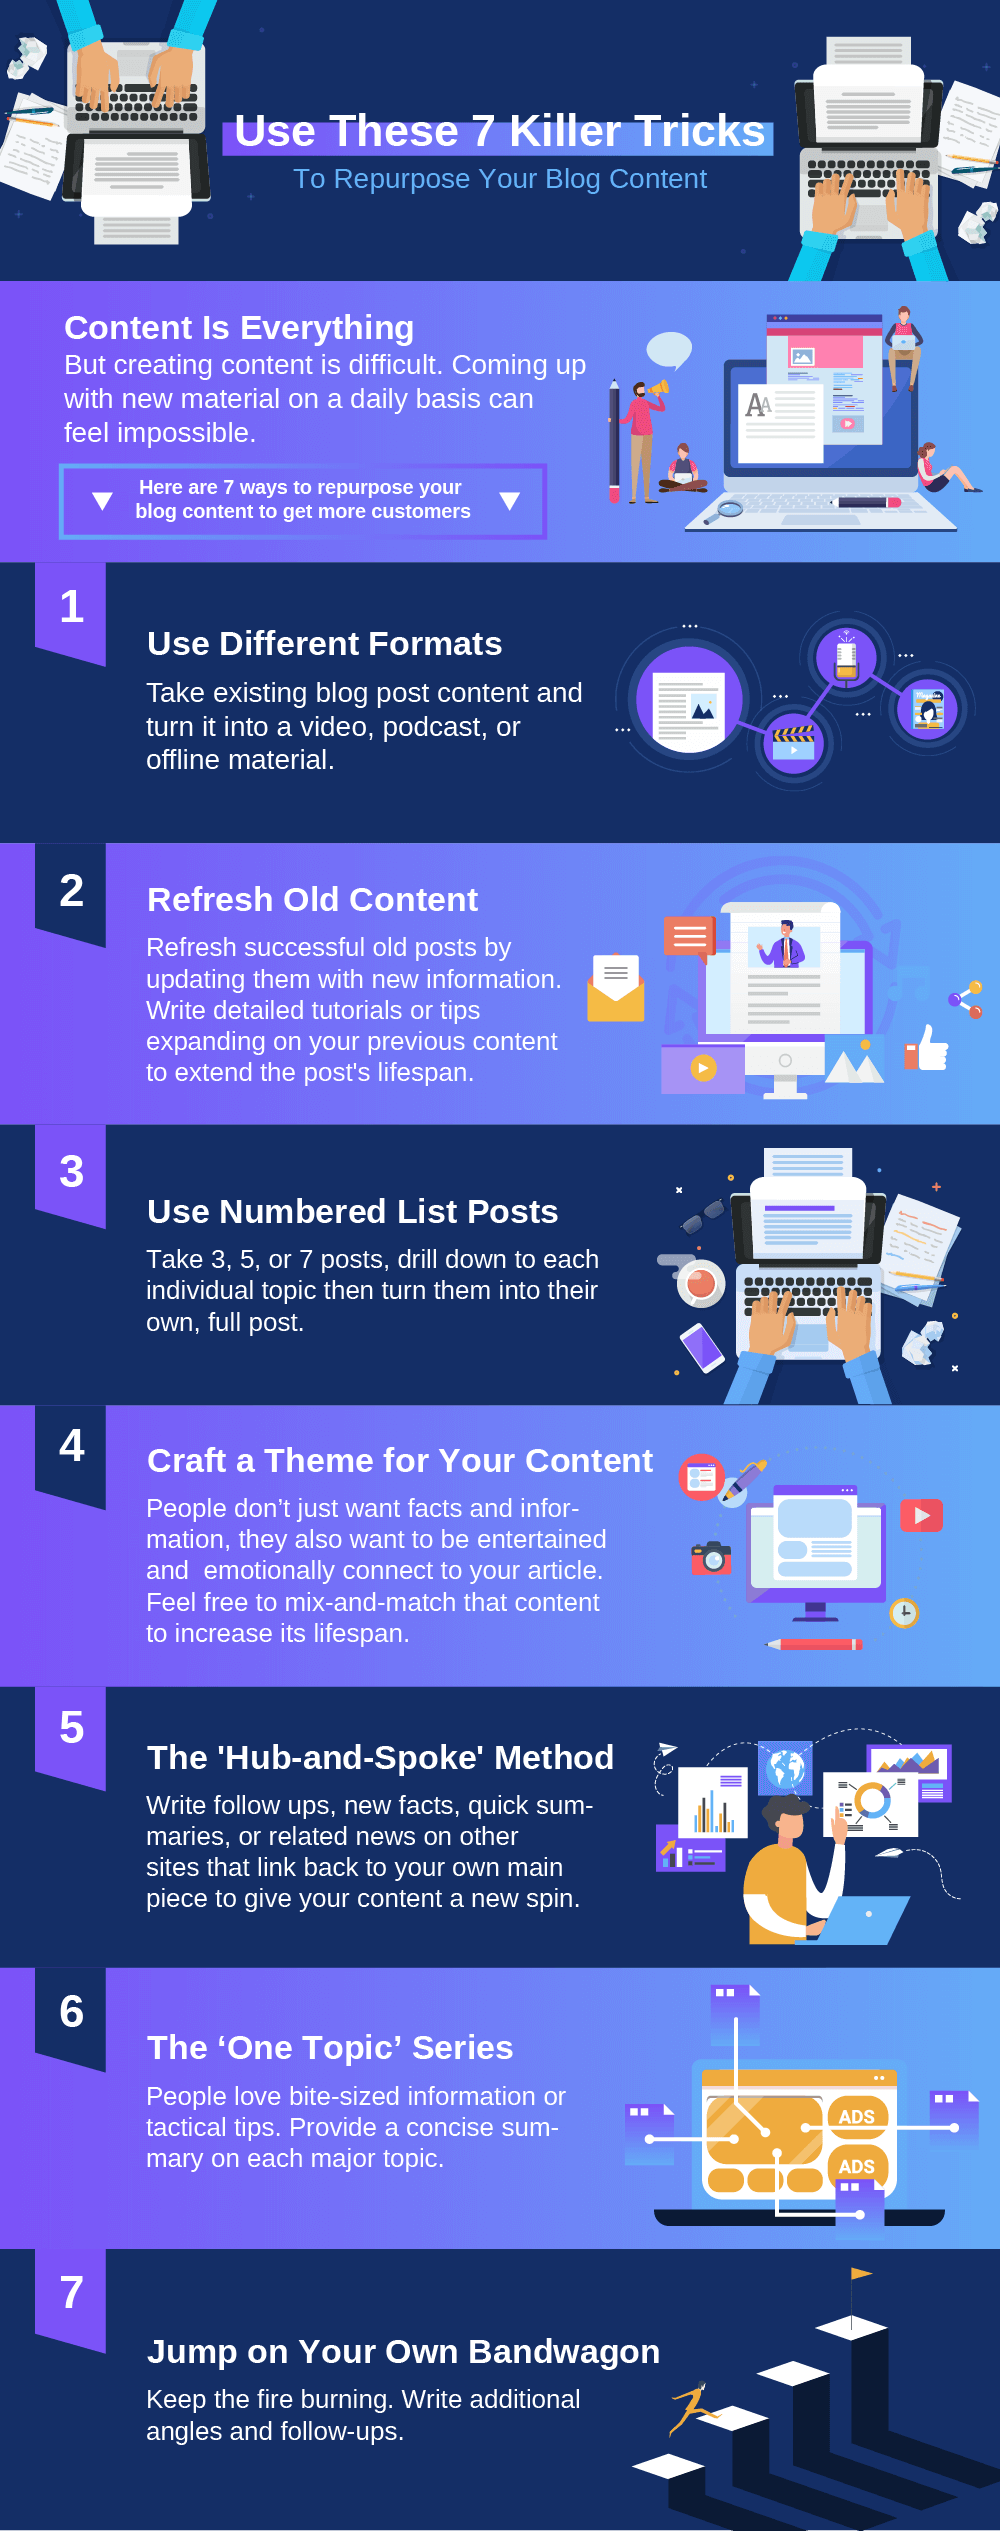 An infographic example showcasing how to repurpose blog content.